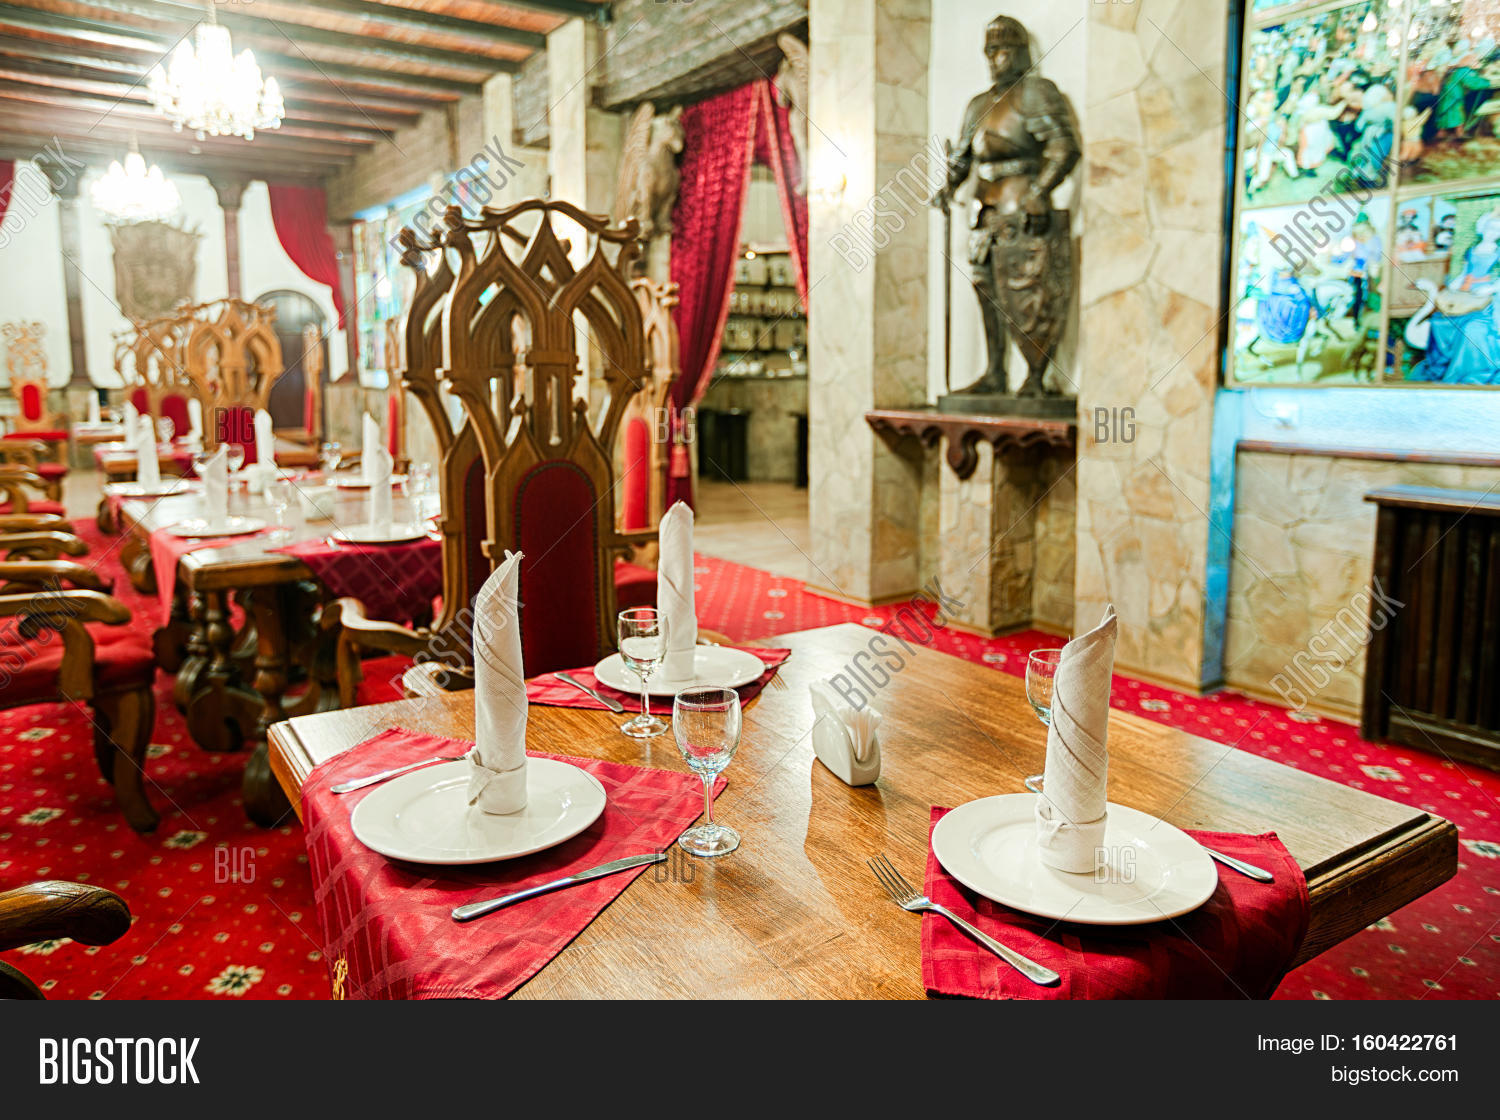 restaurant interior styled as ancient medieval castle, palace. red